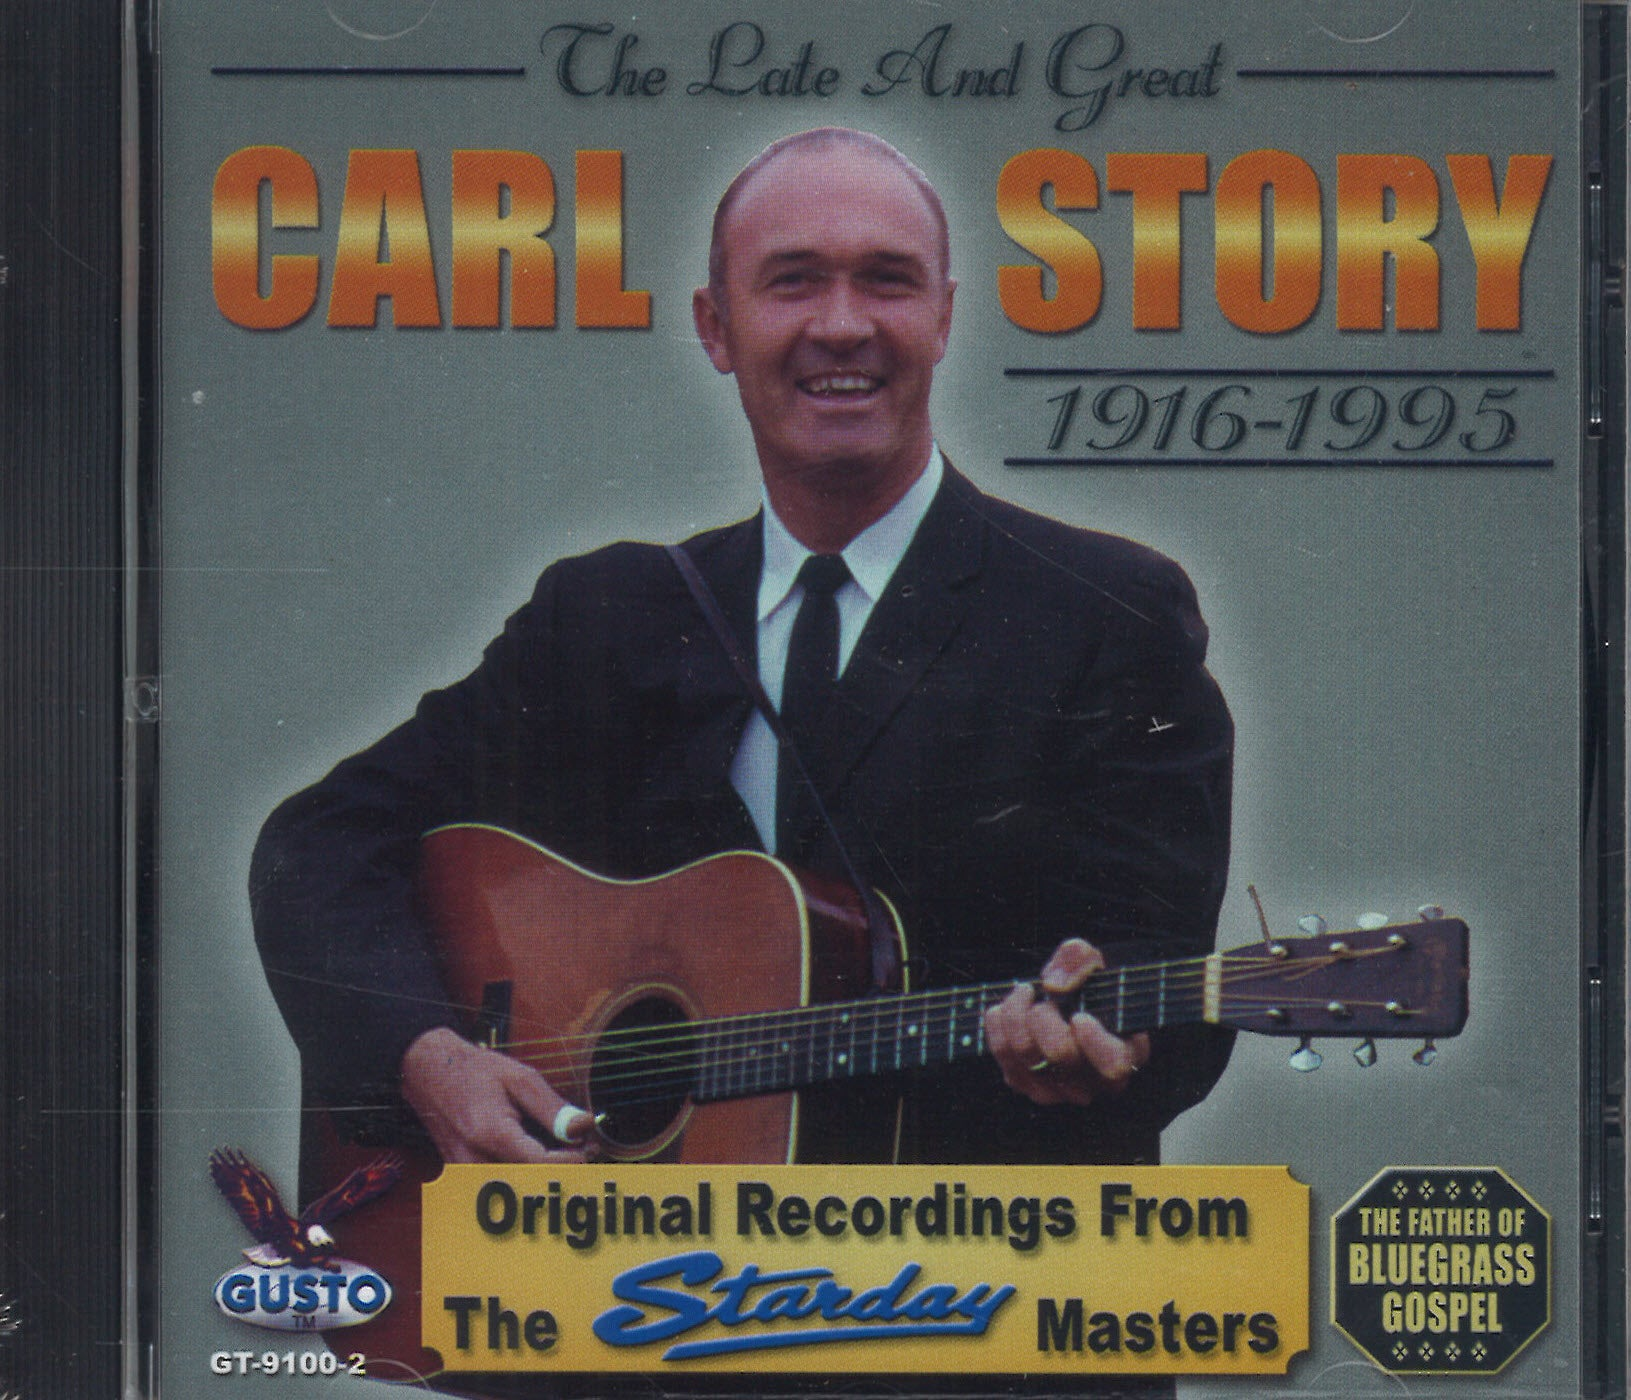 The Late And Great Carl Story